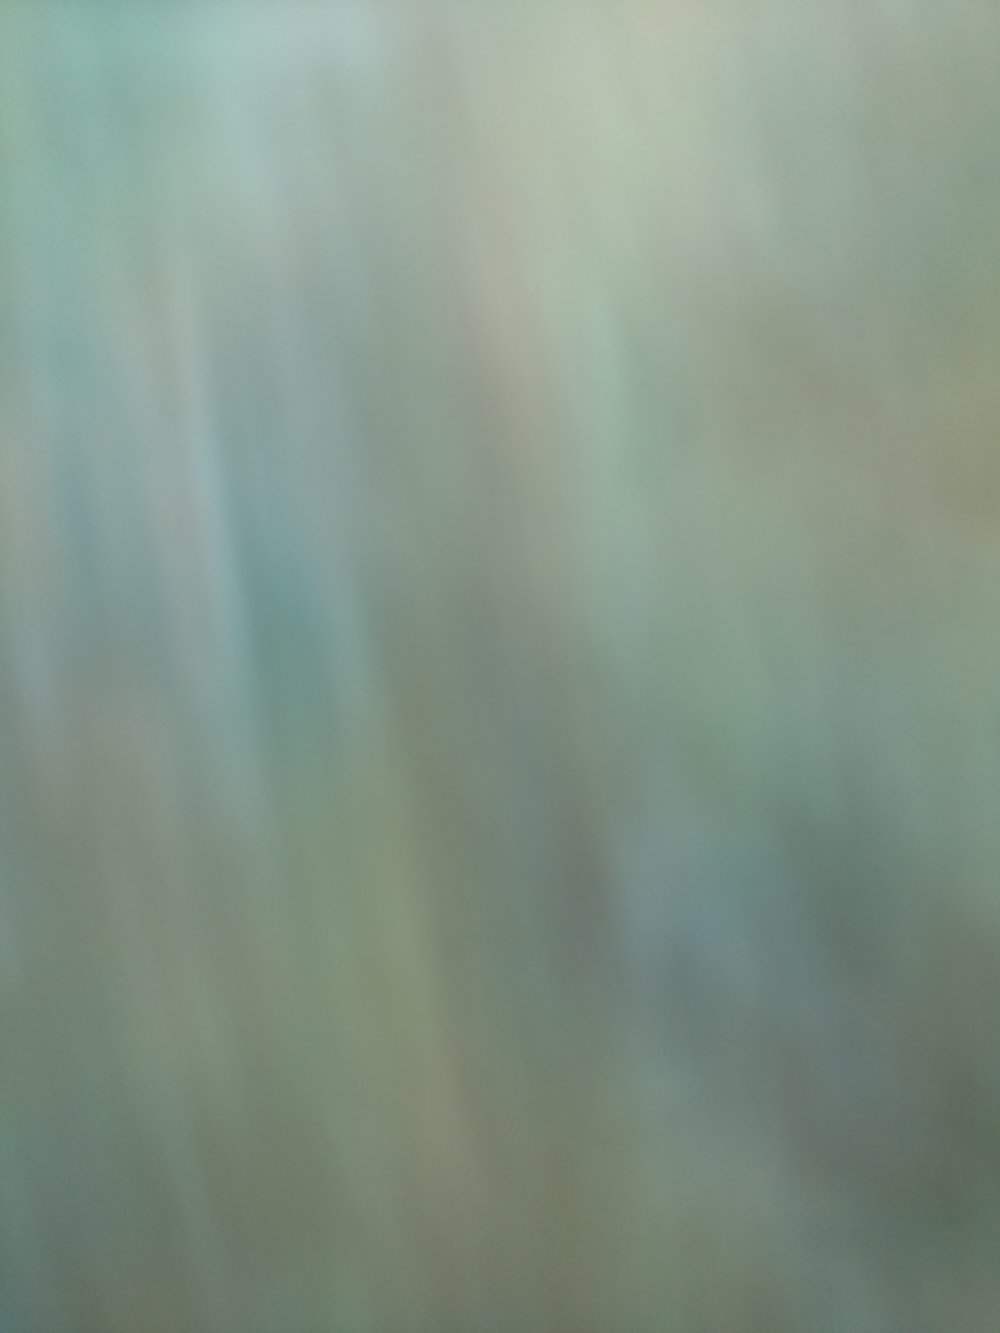 willroth-co-free-texture-gradient-049.jpg